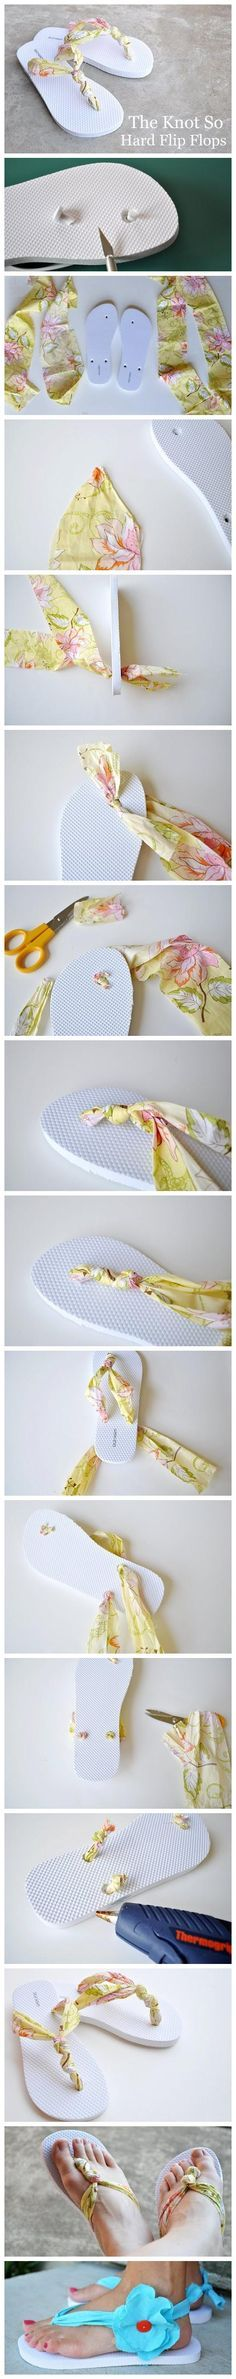 Cool idea to upcycle everyday summer flip flops.